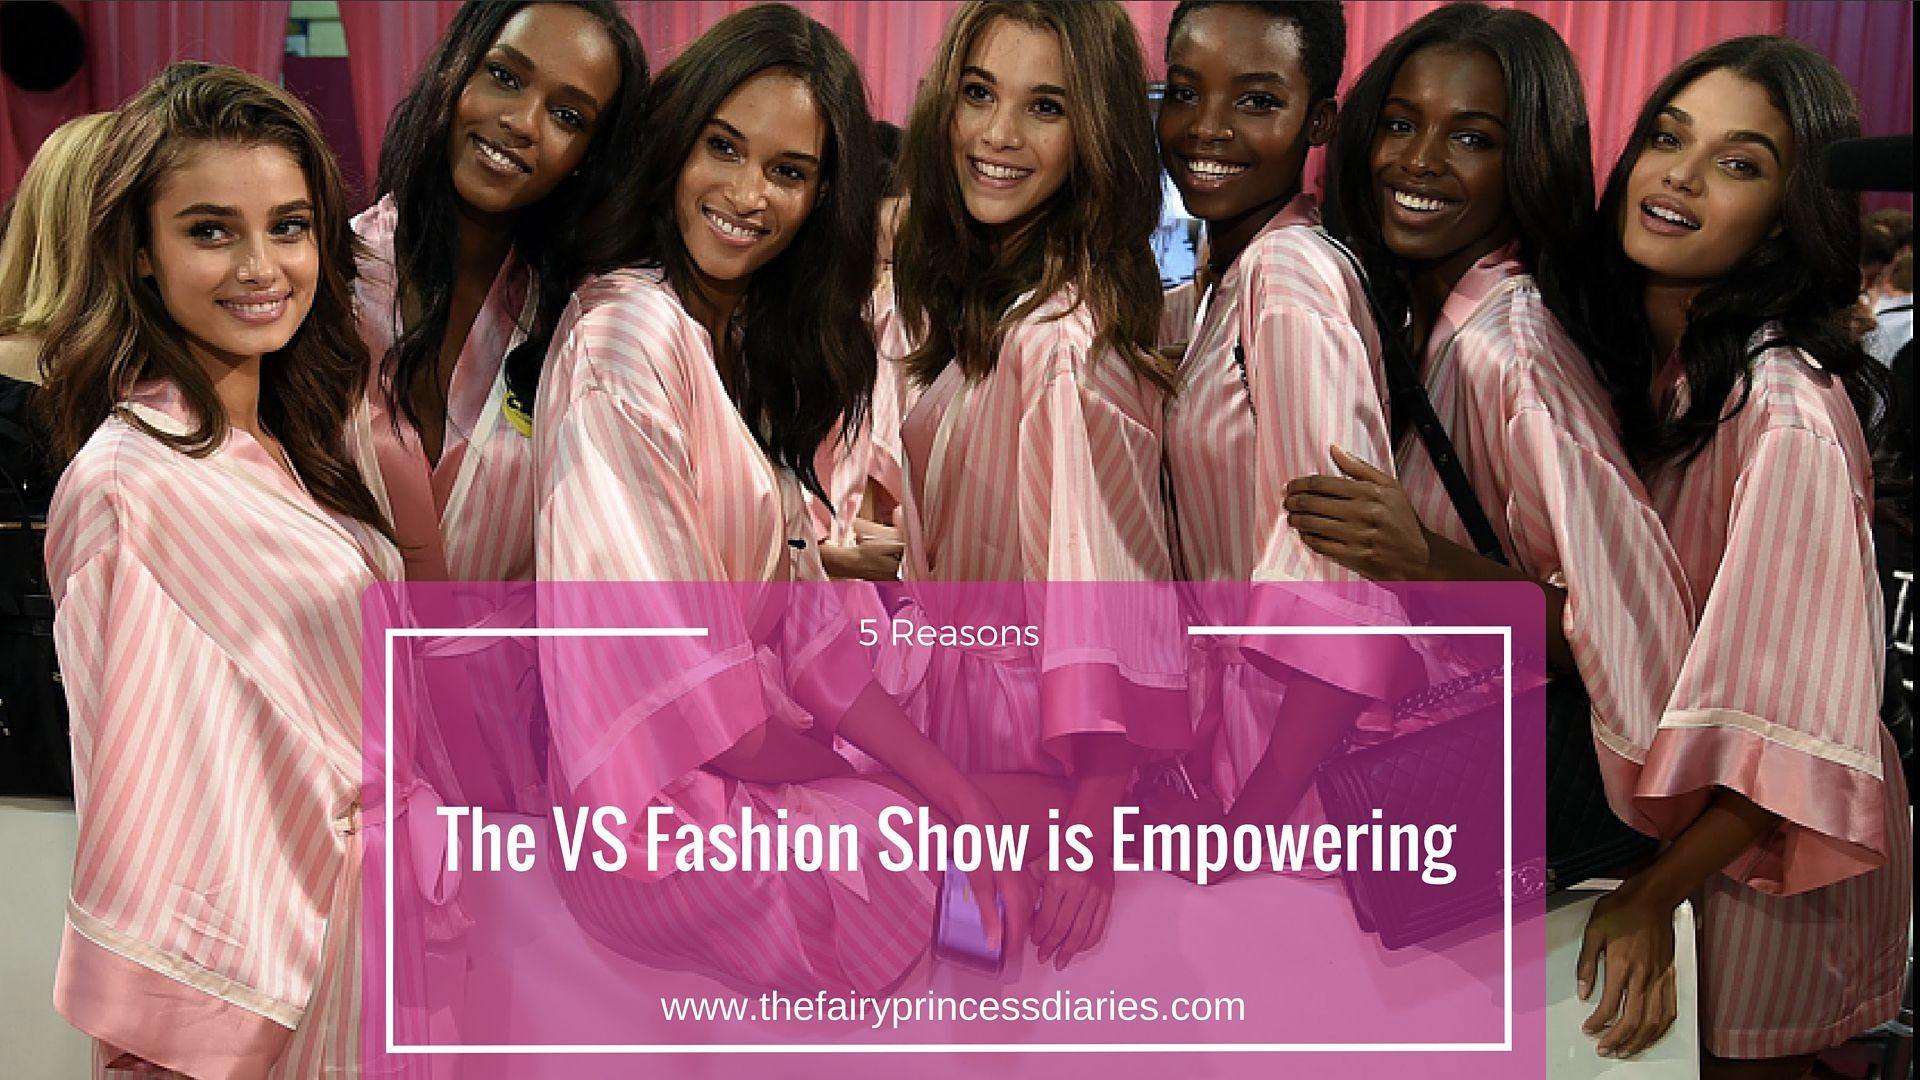 5 ways the Victoria's Secret Fashion Show is Empowering